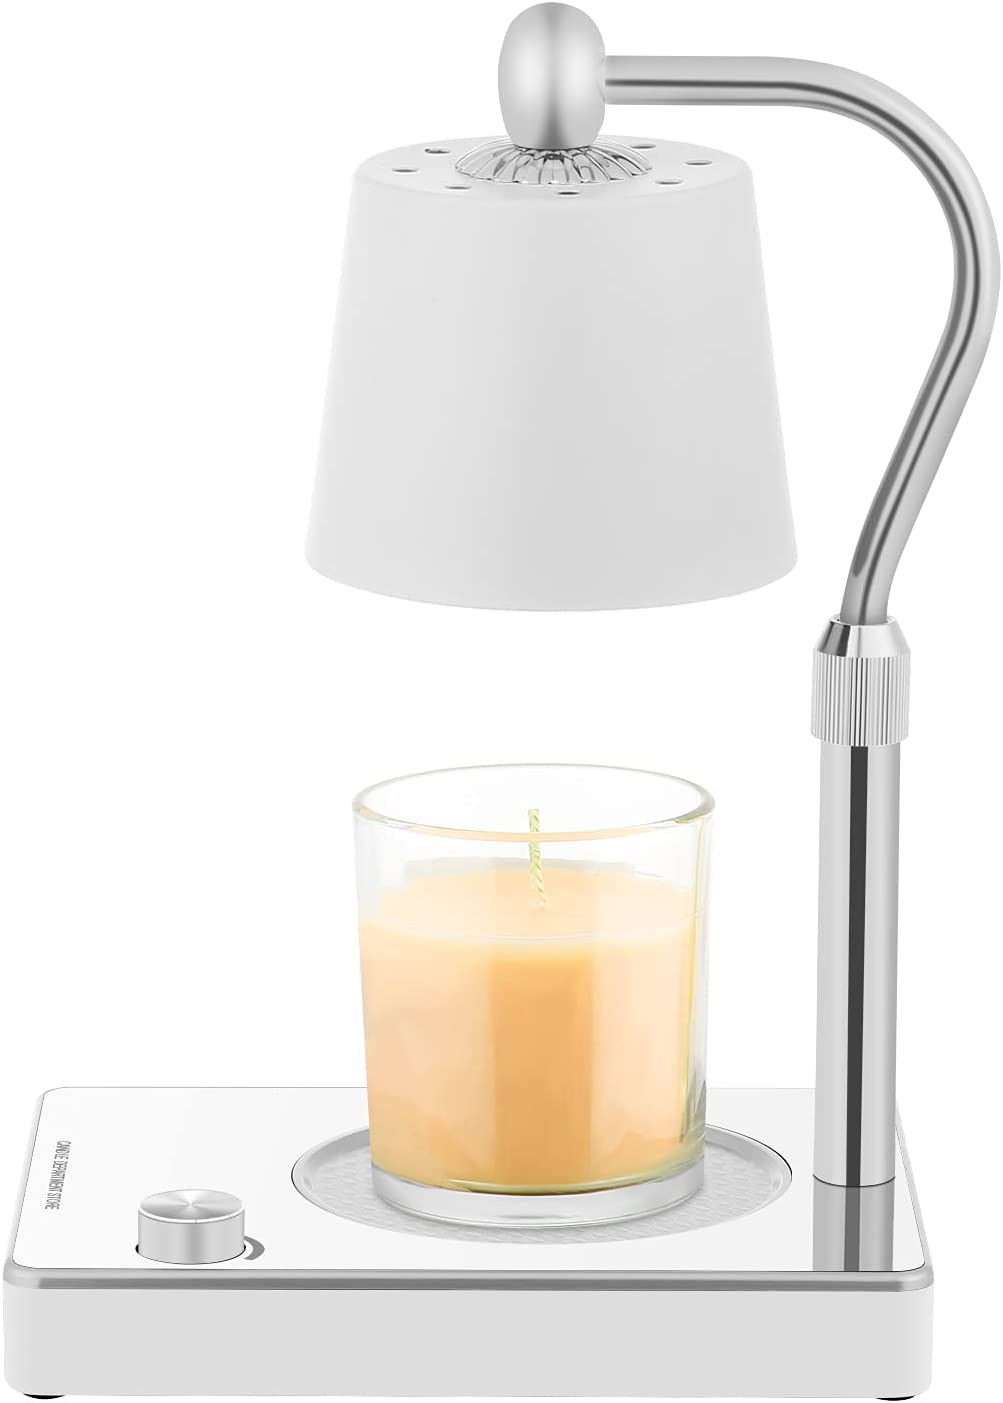 Candle Warmer, Candle Lamp Warmer, Electric Candle Wax Warmer, No Flame Candle Lamp Adjustable Height and Brightness Warmer Lamp for Bedroom Decor(Silver)